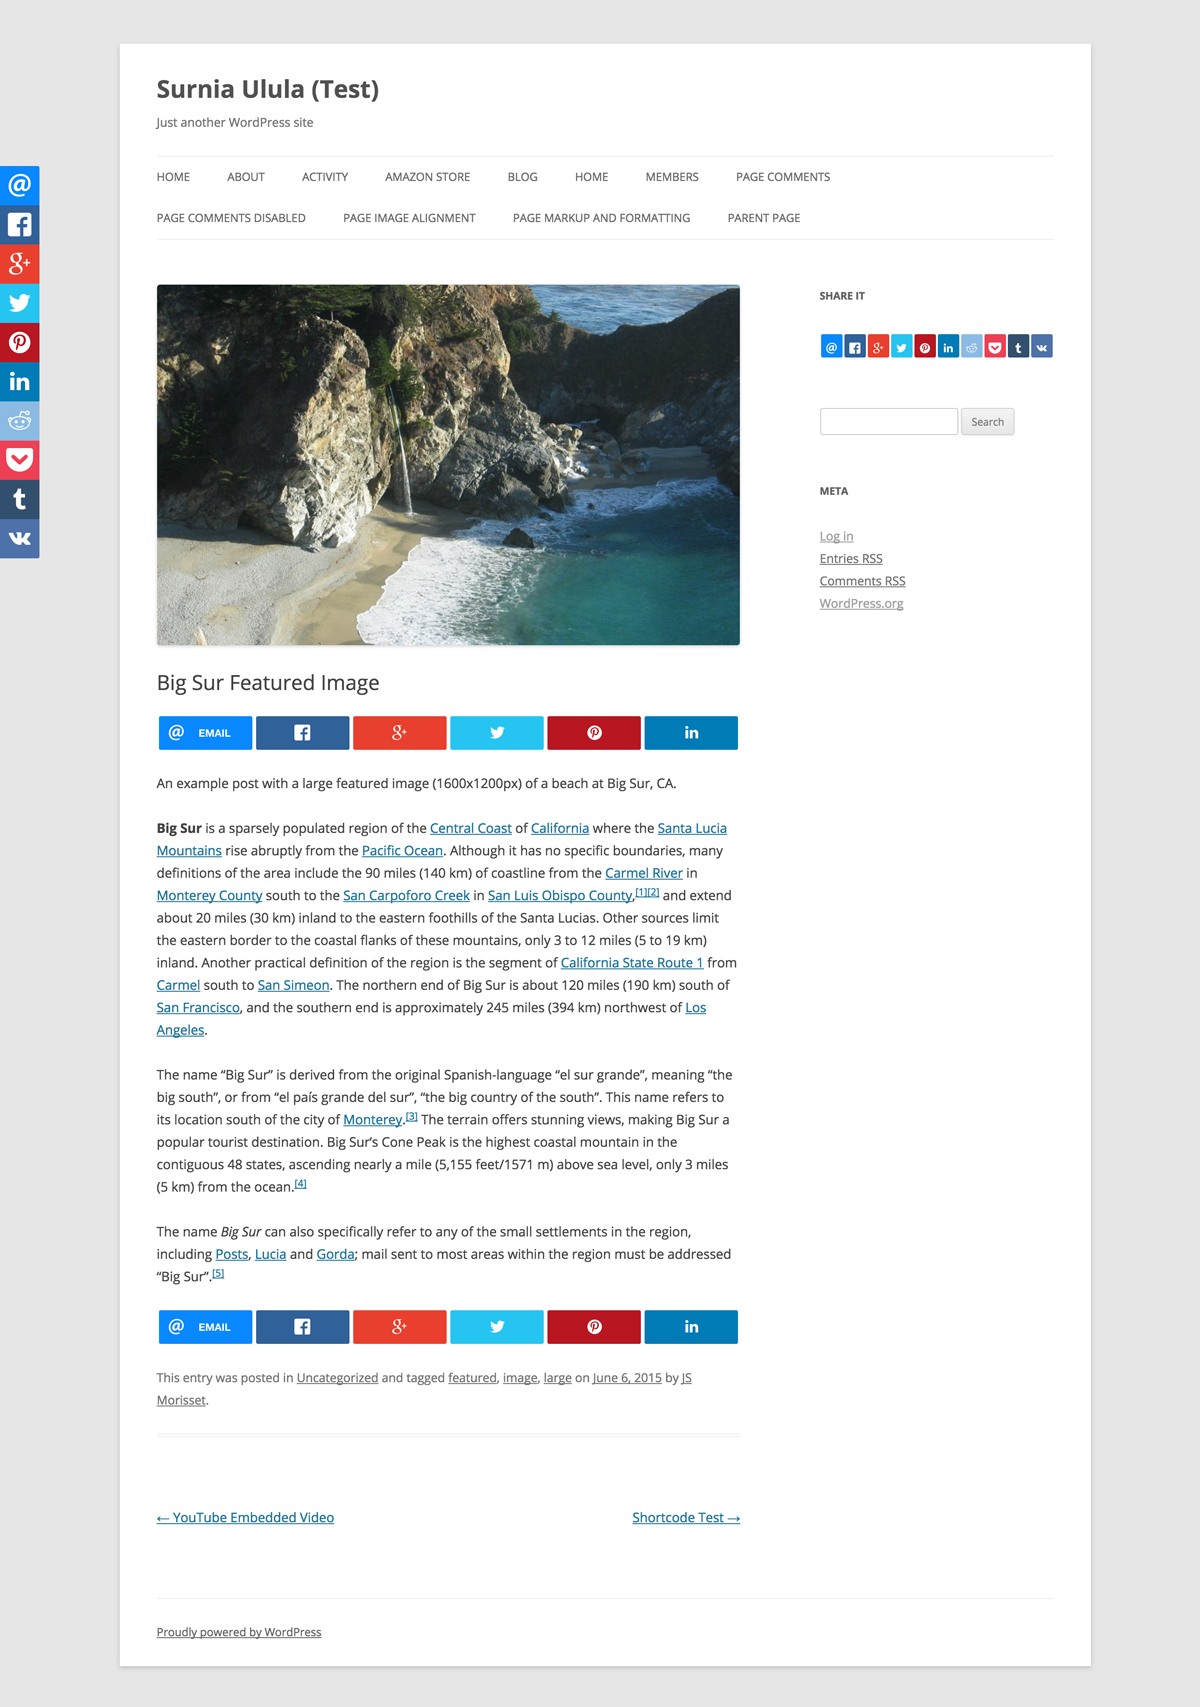 WPSSO RRSSB – Ridiculously Responsive Social Sharing Buttons